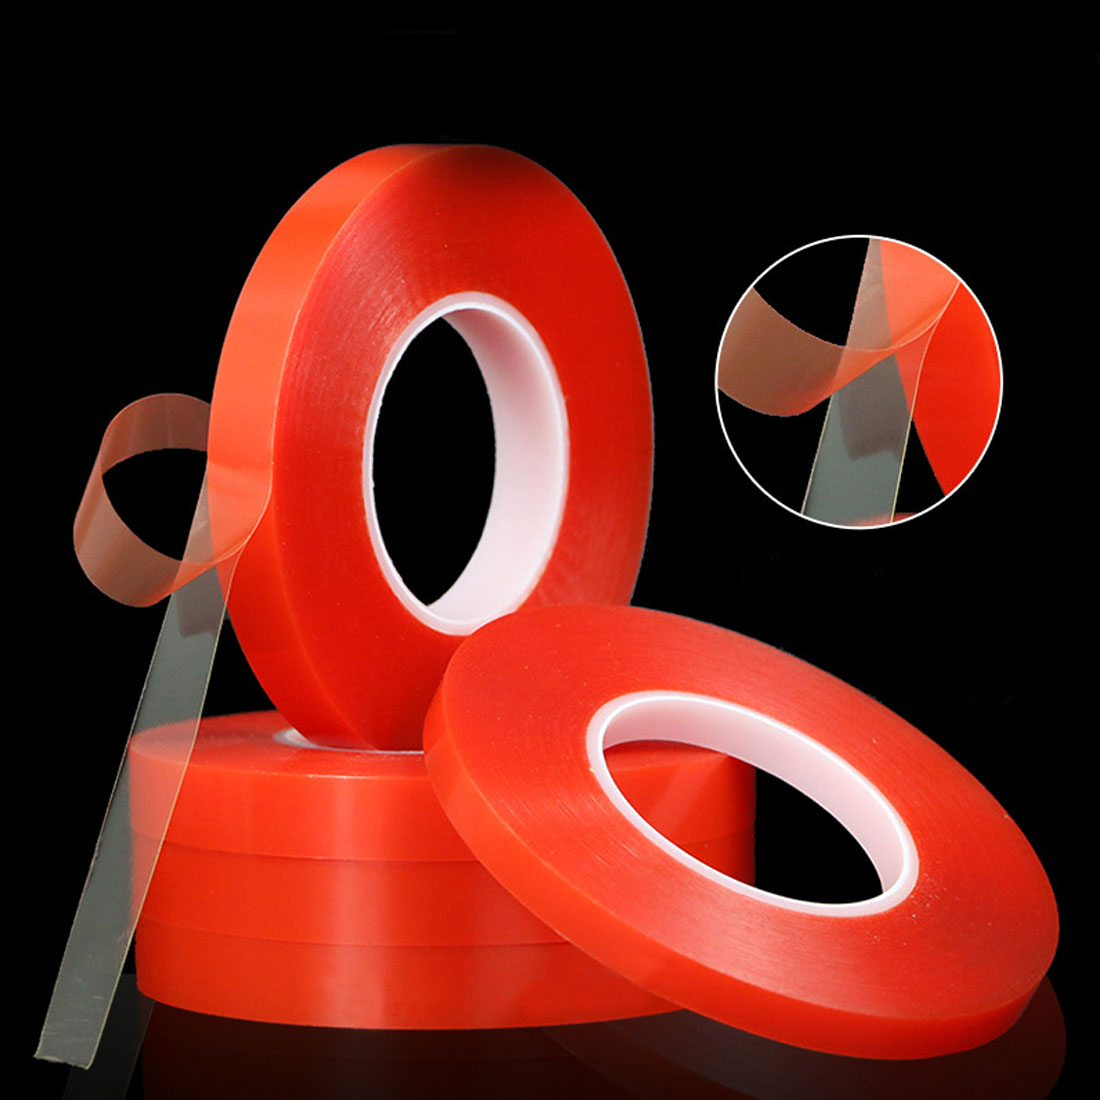 2mm 50M Strong Acrylic Adhesive Red Film Clear Sticker Double Sided Tape For Mobile Phone LCD Pannel Display Screen Repair